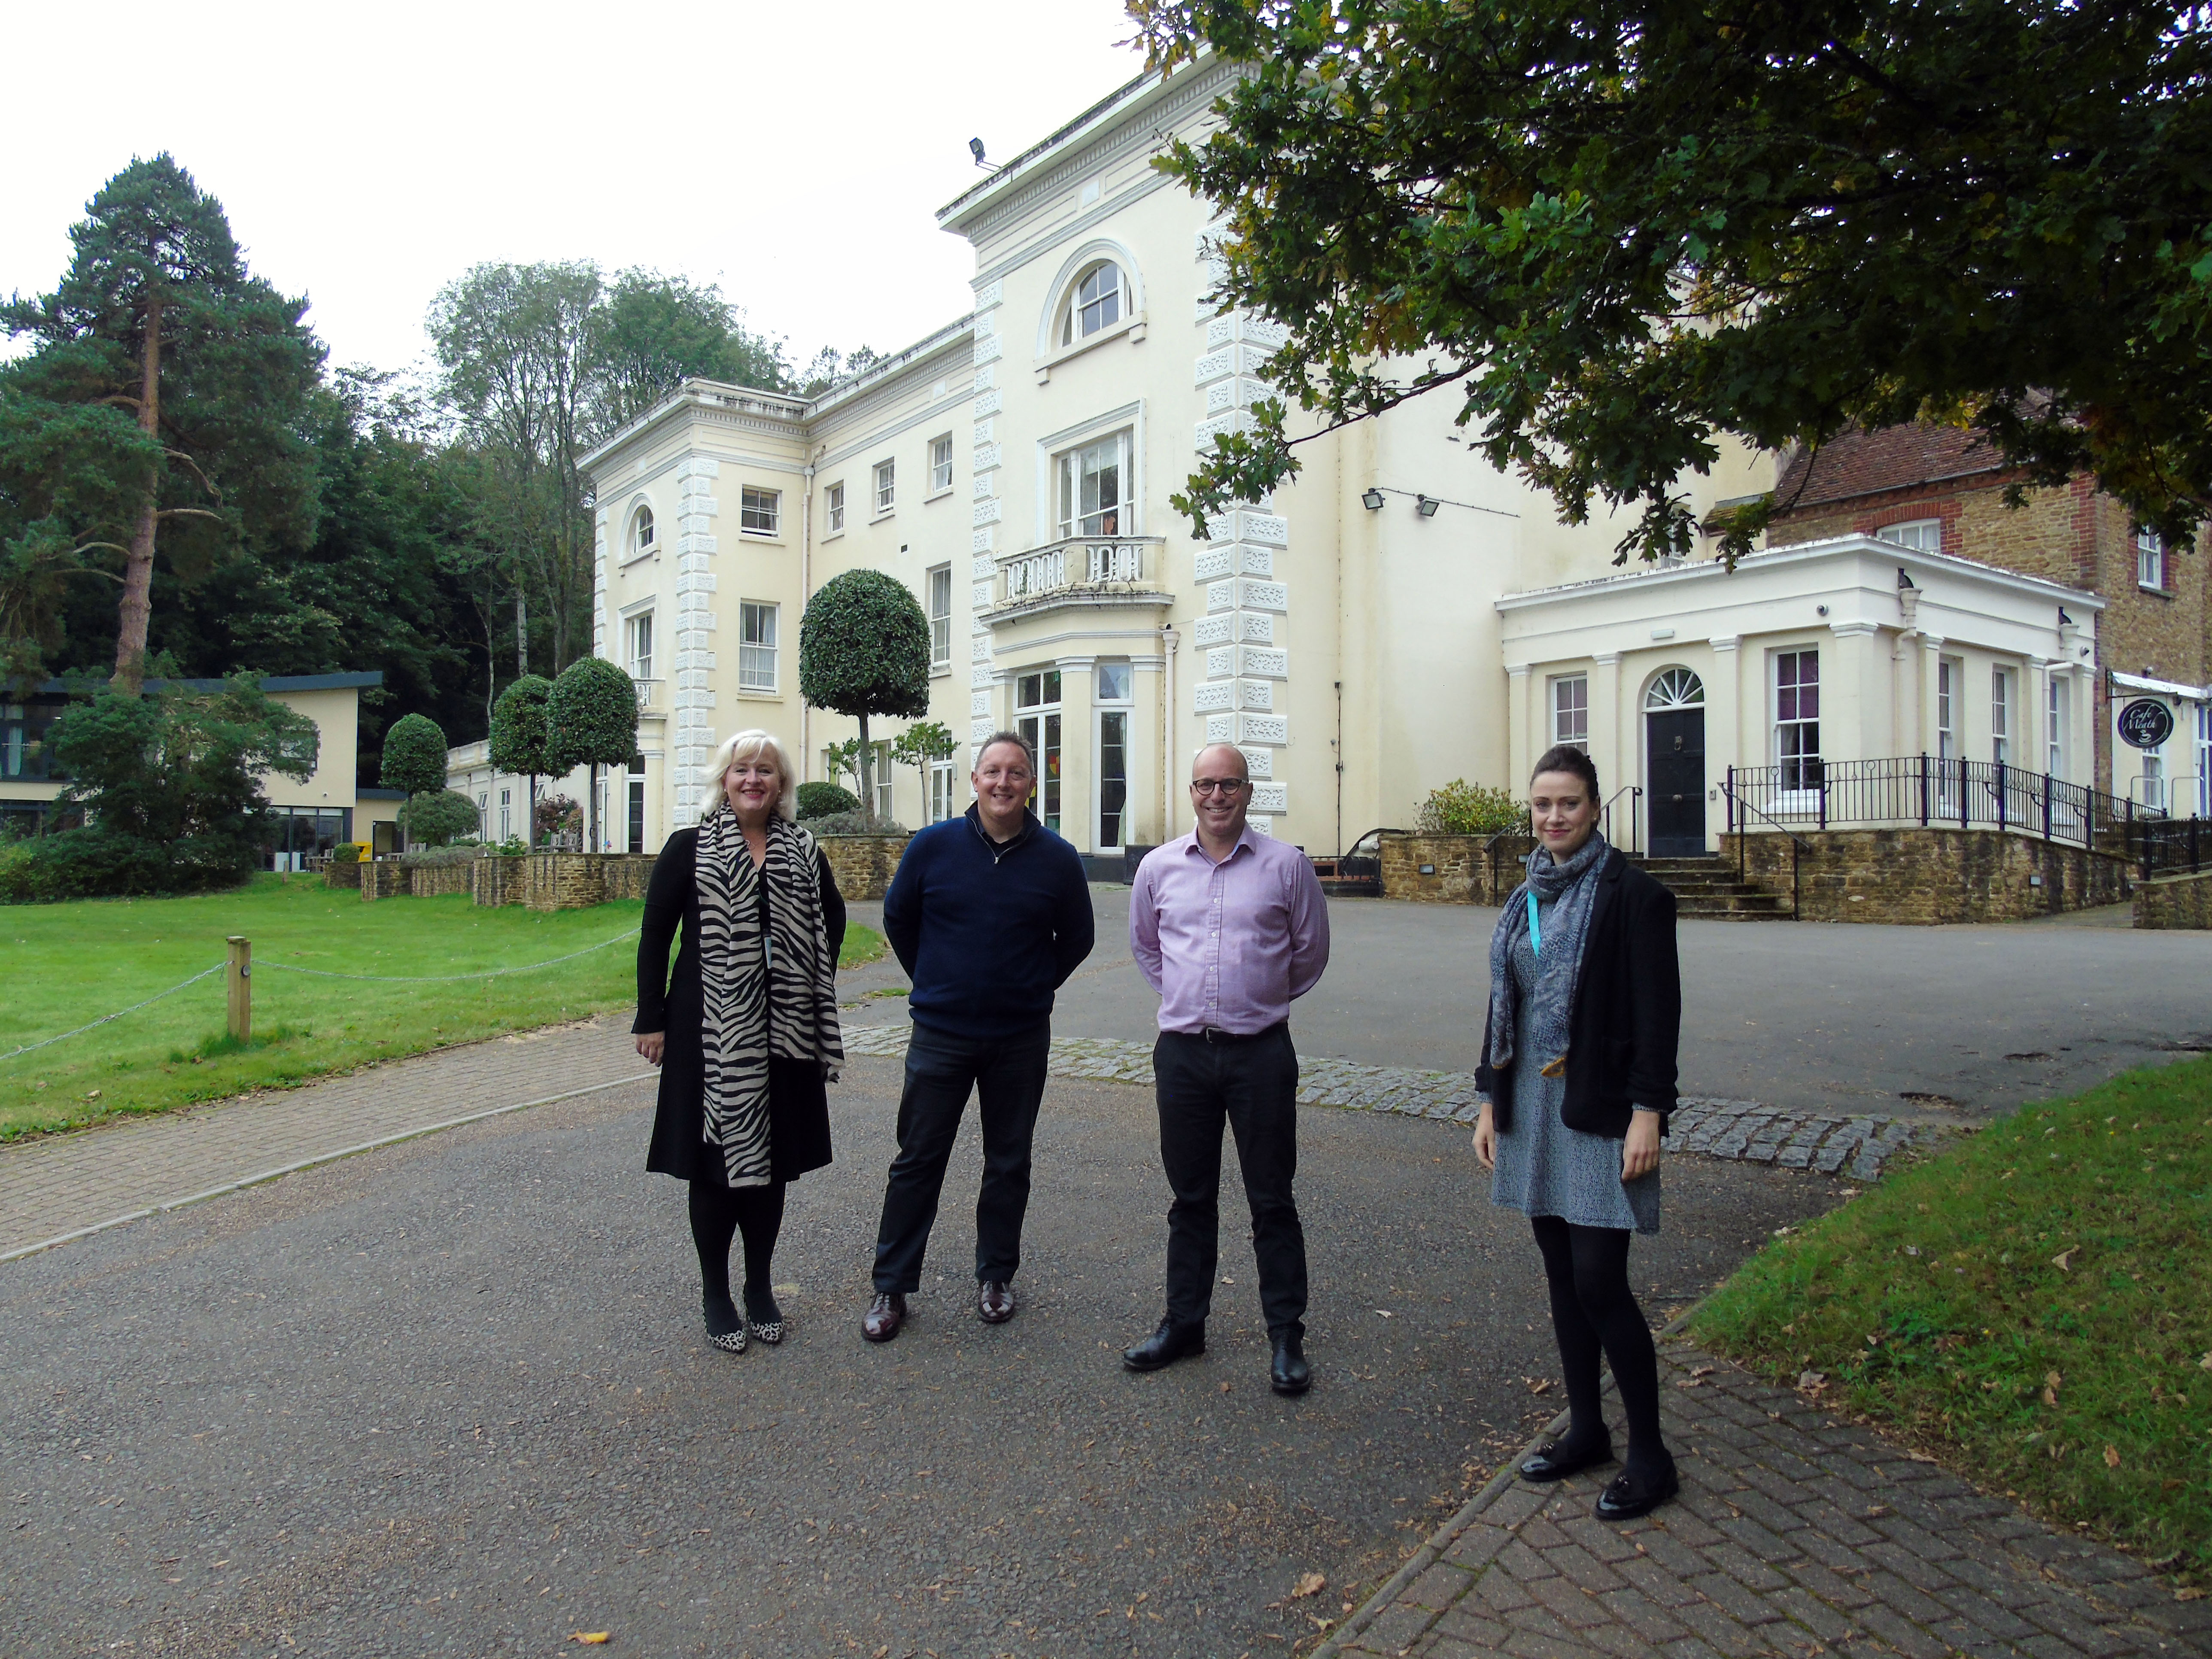 Seymours-Godalming-At-The-Meath-Epilepsy-Charity-surrey